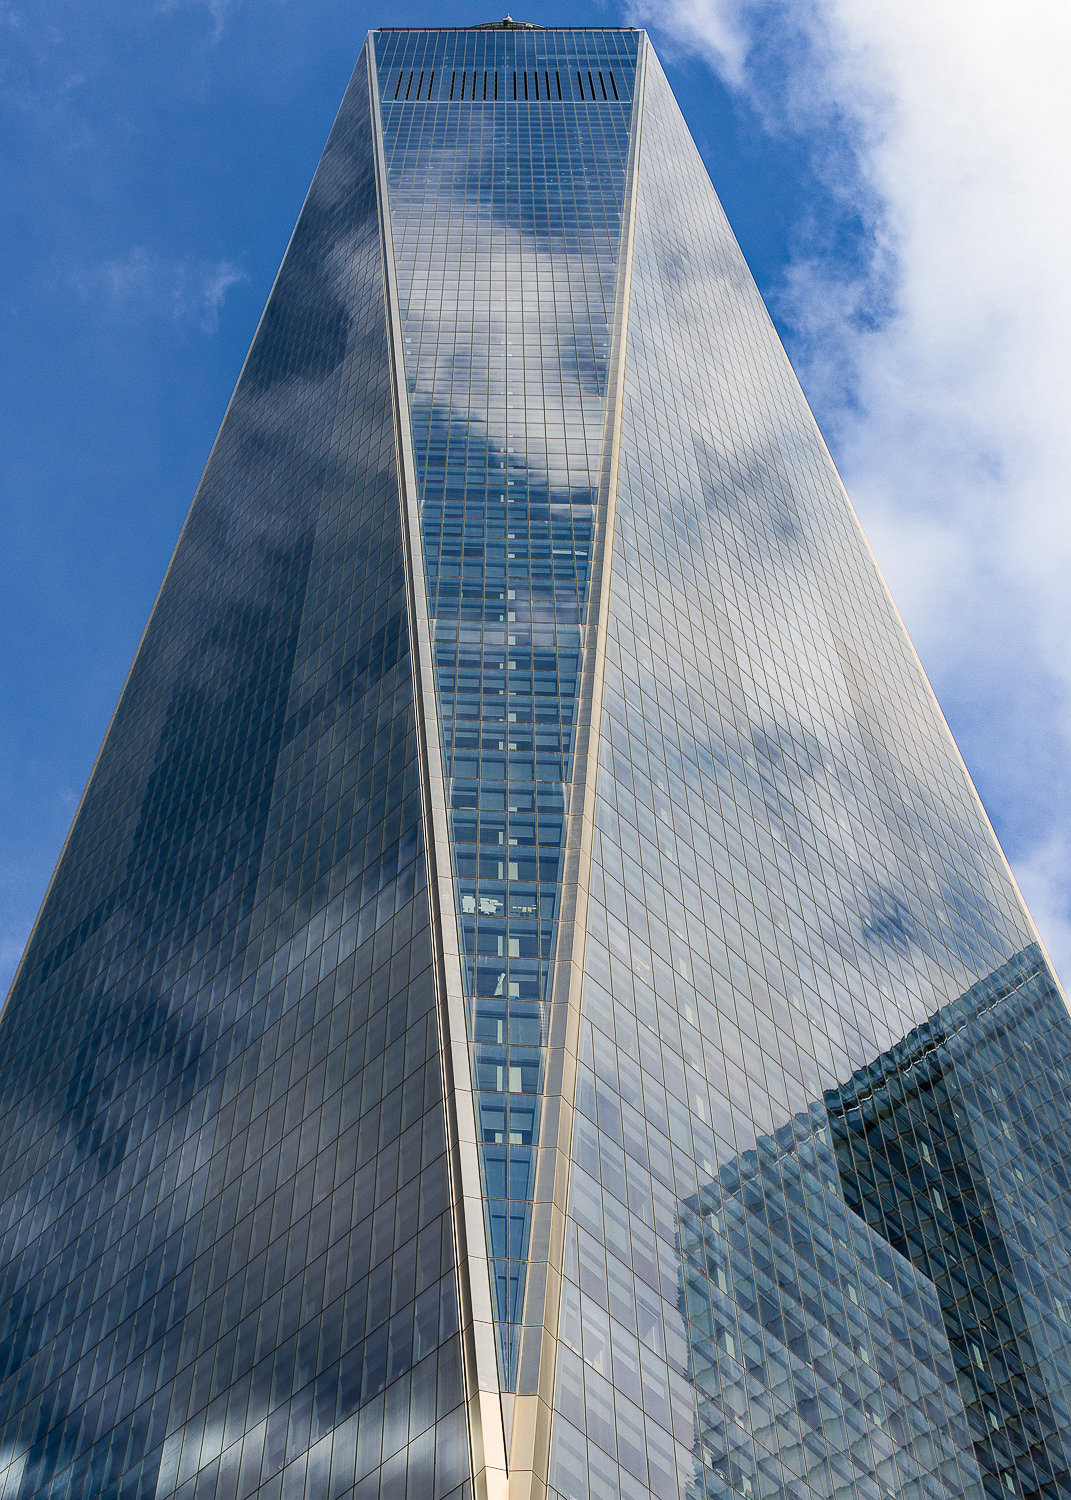 One World Trade Center - architect - David Childs. The new tower was completed in 2013 after the terrorist attack on 9/11/01 took down the original building. It is the tallest skyscraper in NYC at 1,776 ft, a deliberate reference to the year when the Declaration of Independence was signed.